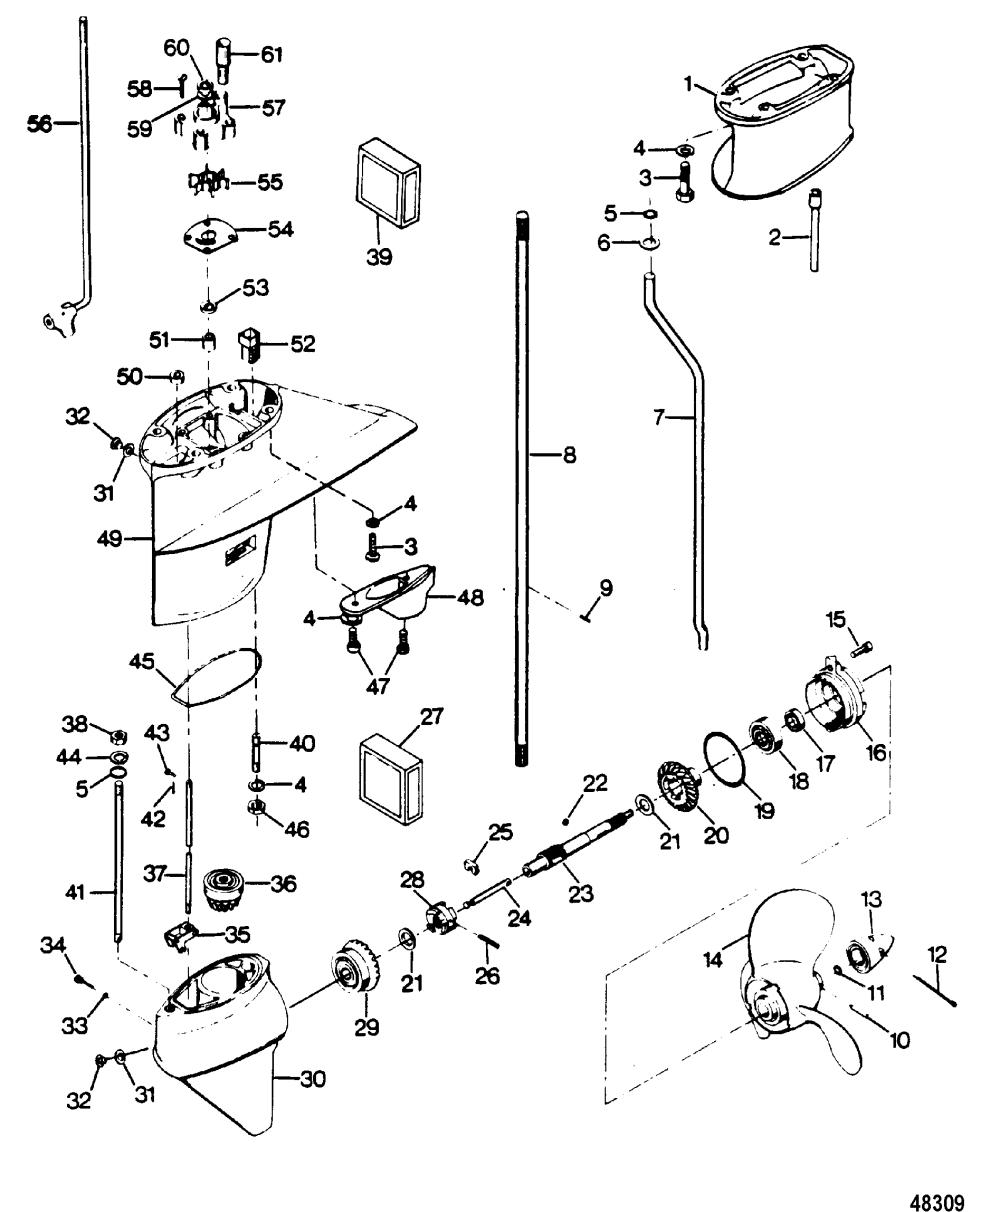 medium resolution of mercury outboard tachometer wiring diagram best free for mercury outboard trim diagrams on 90 hp force